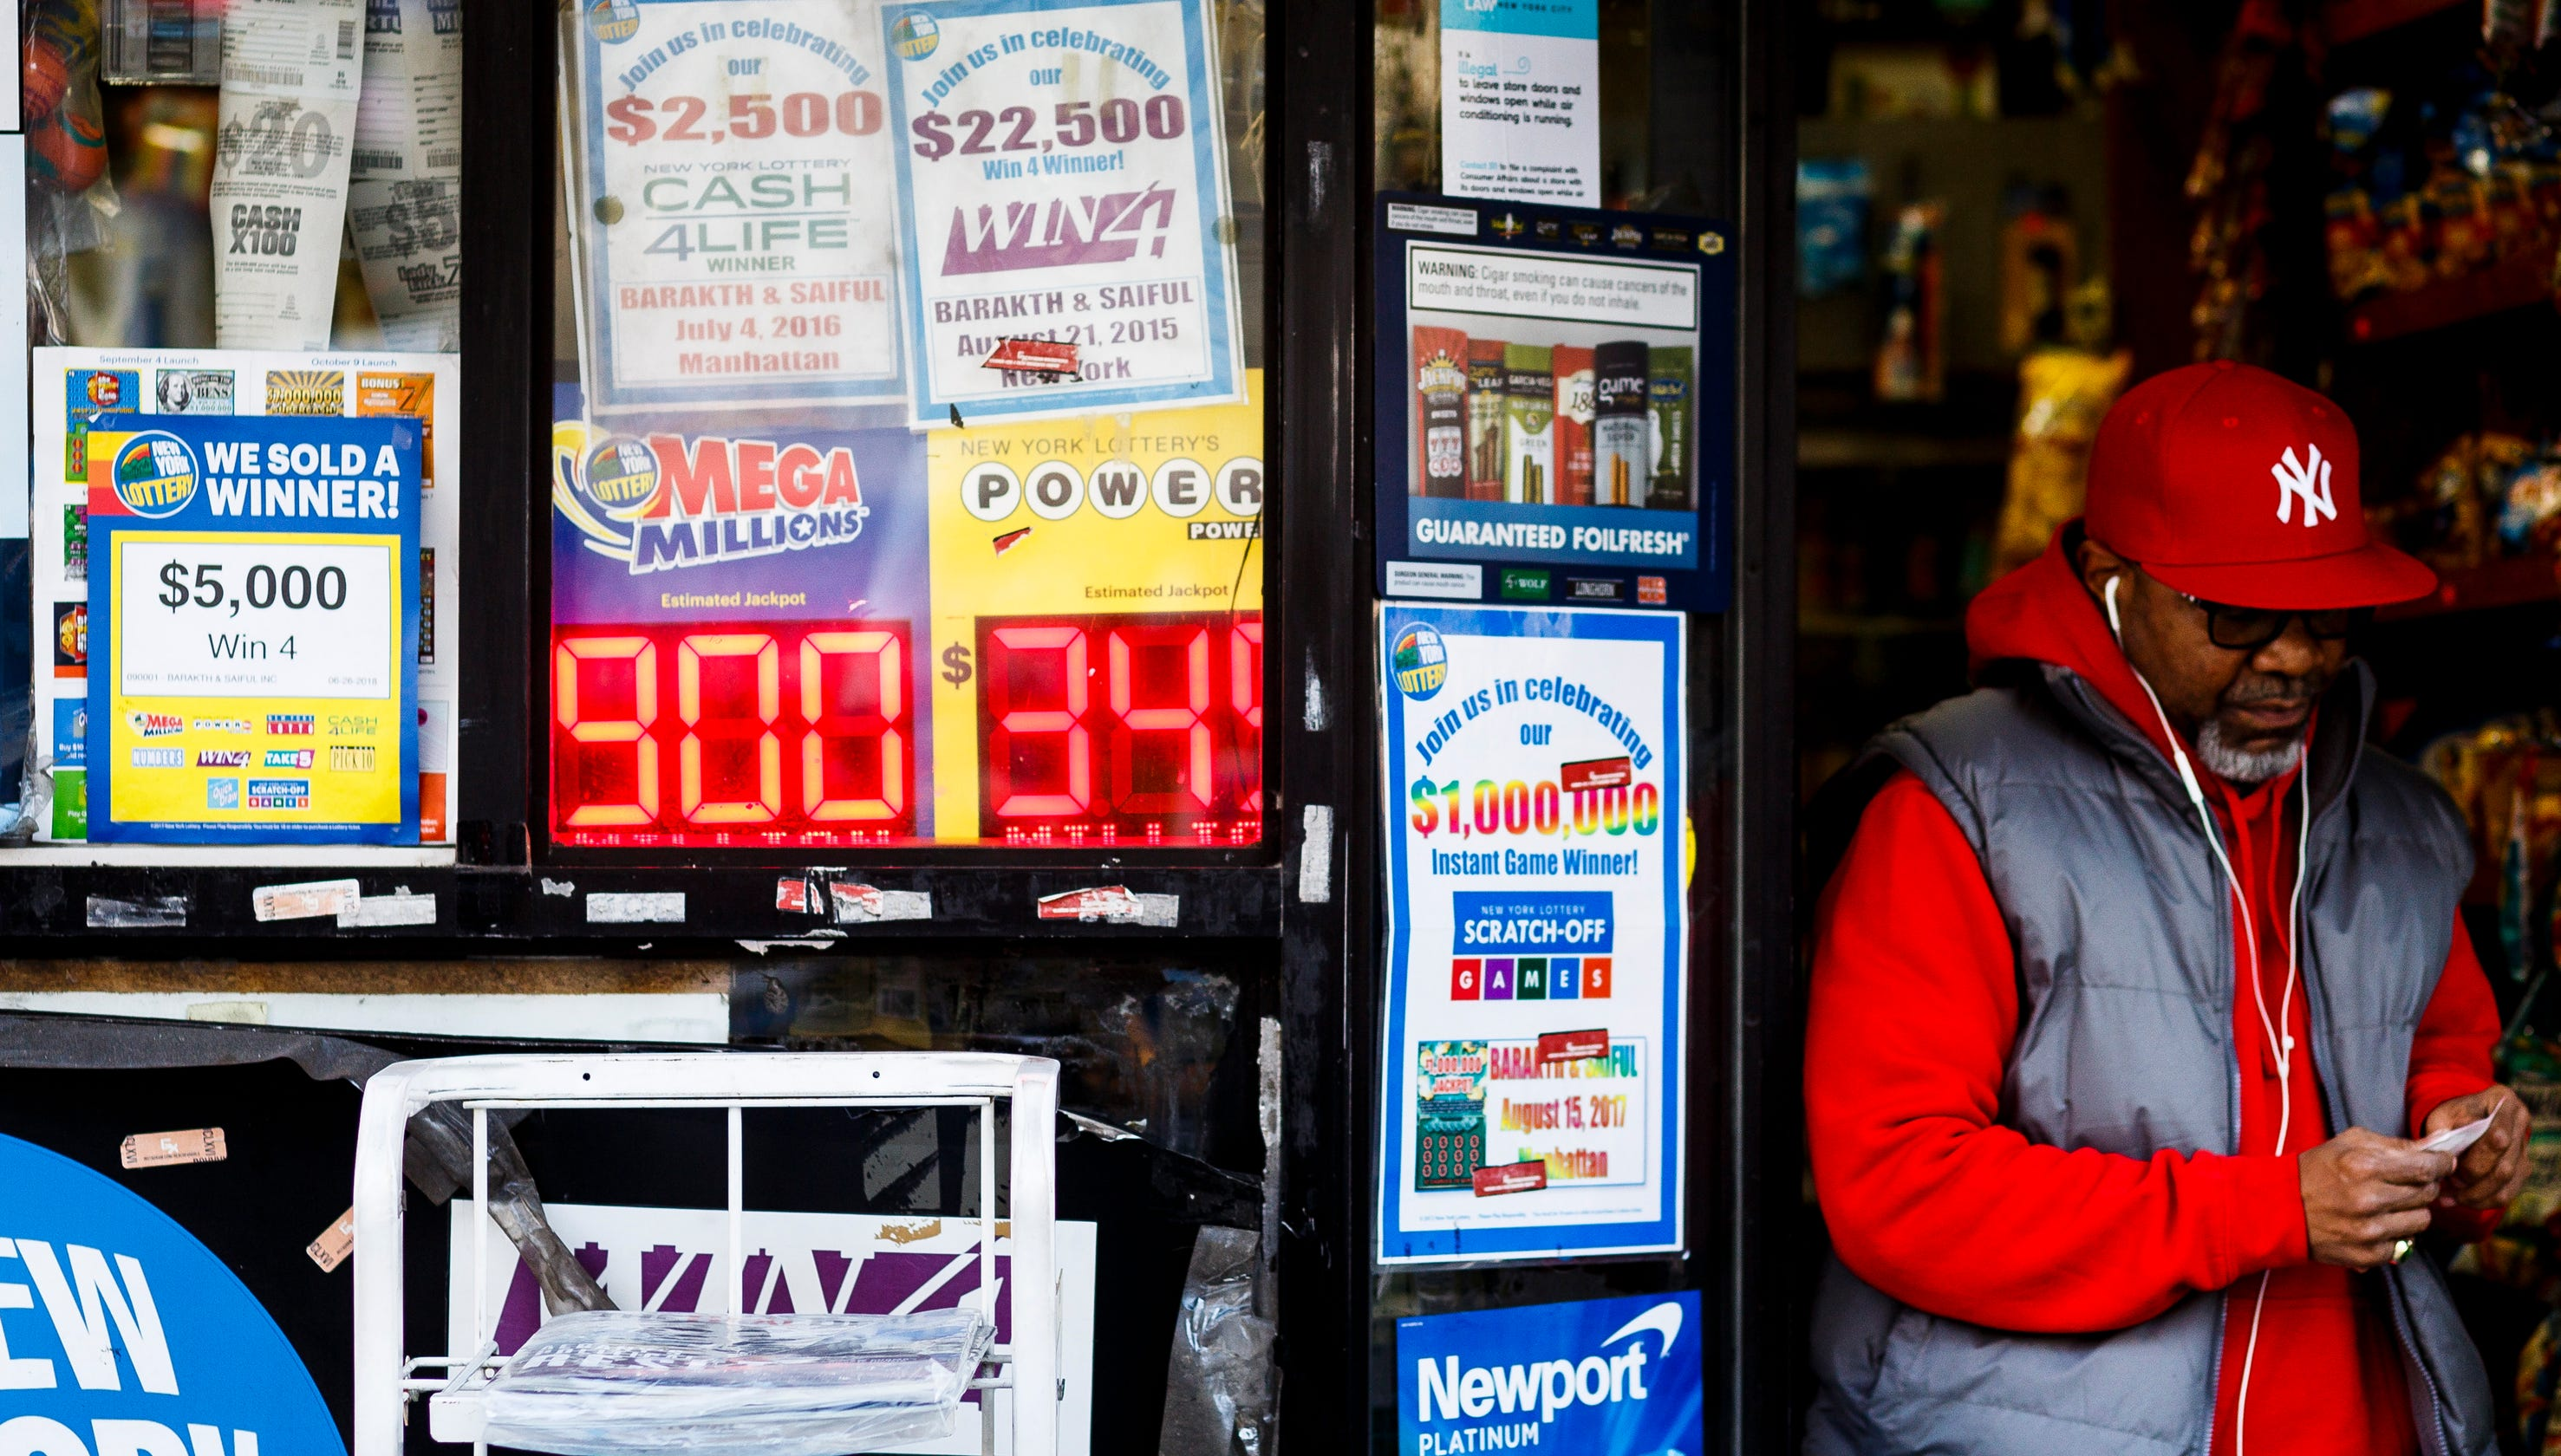 Mega Millions results: What time? Odds of winning $1 billion jackpot